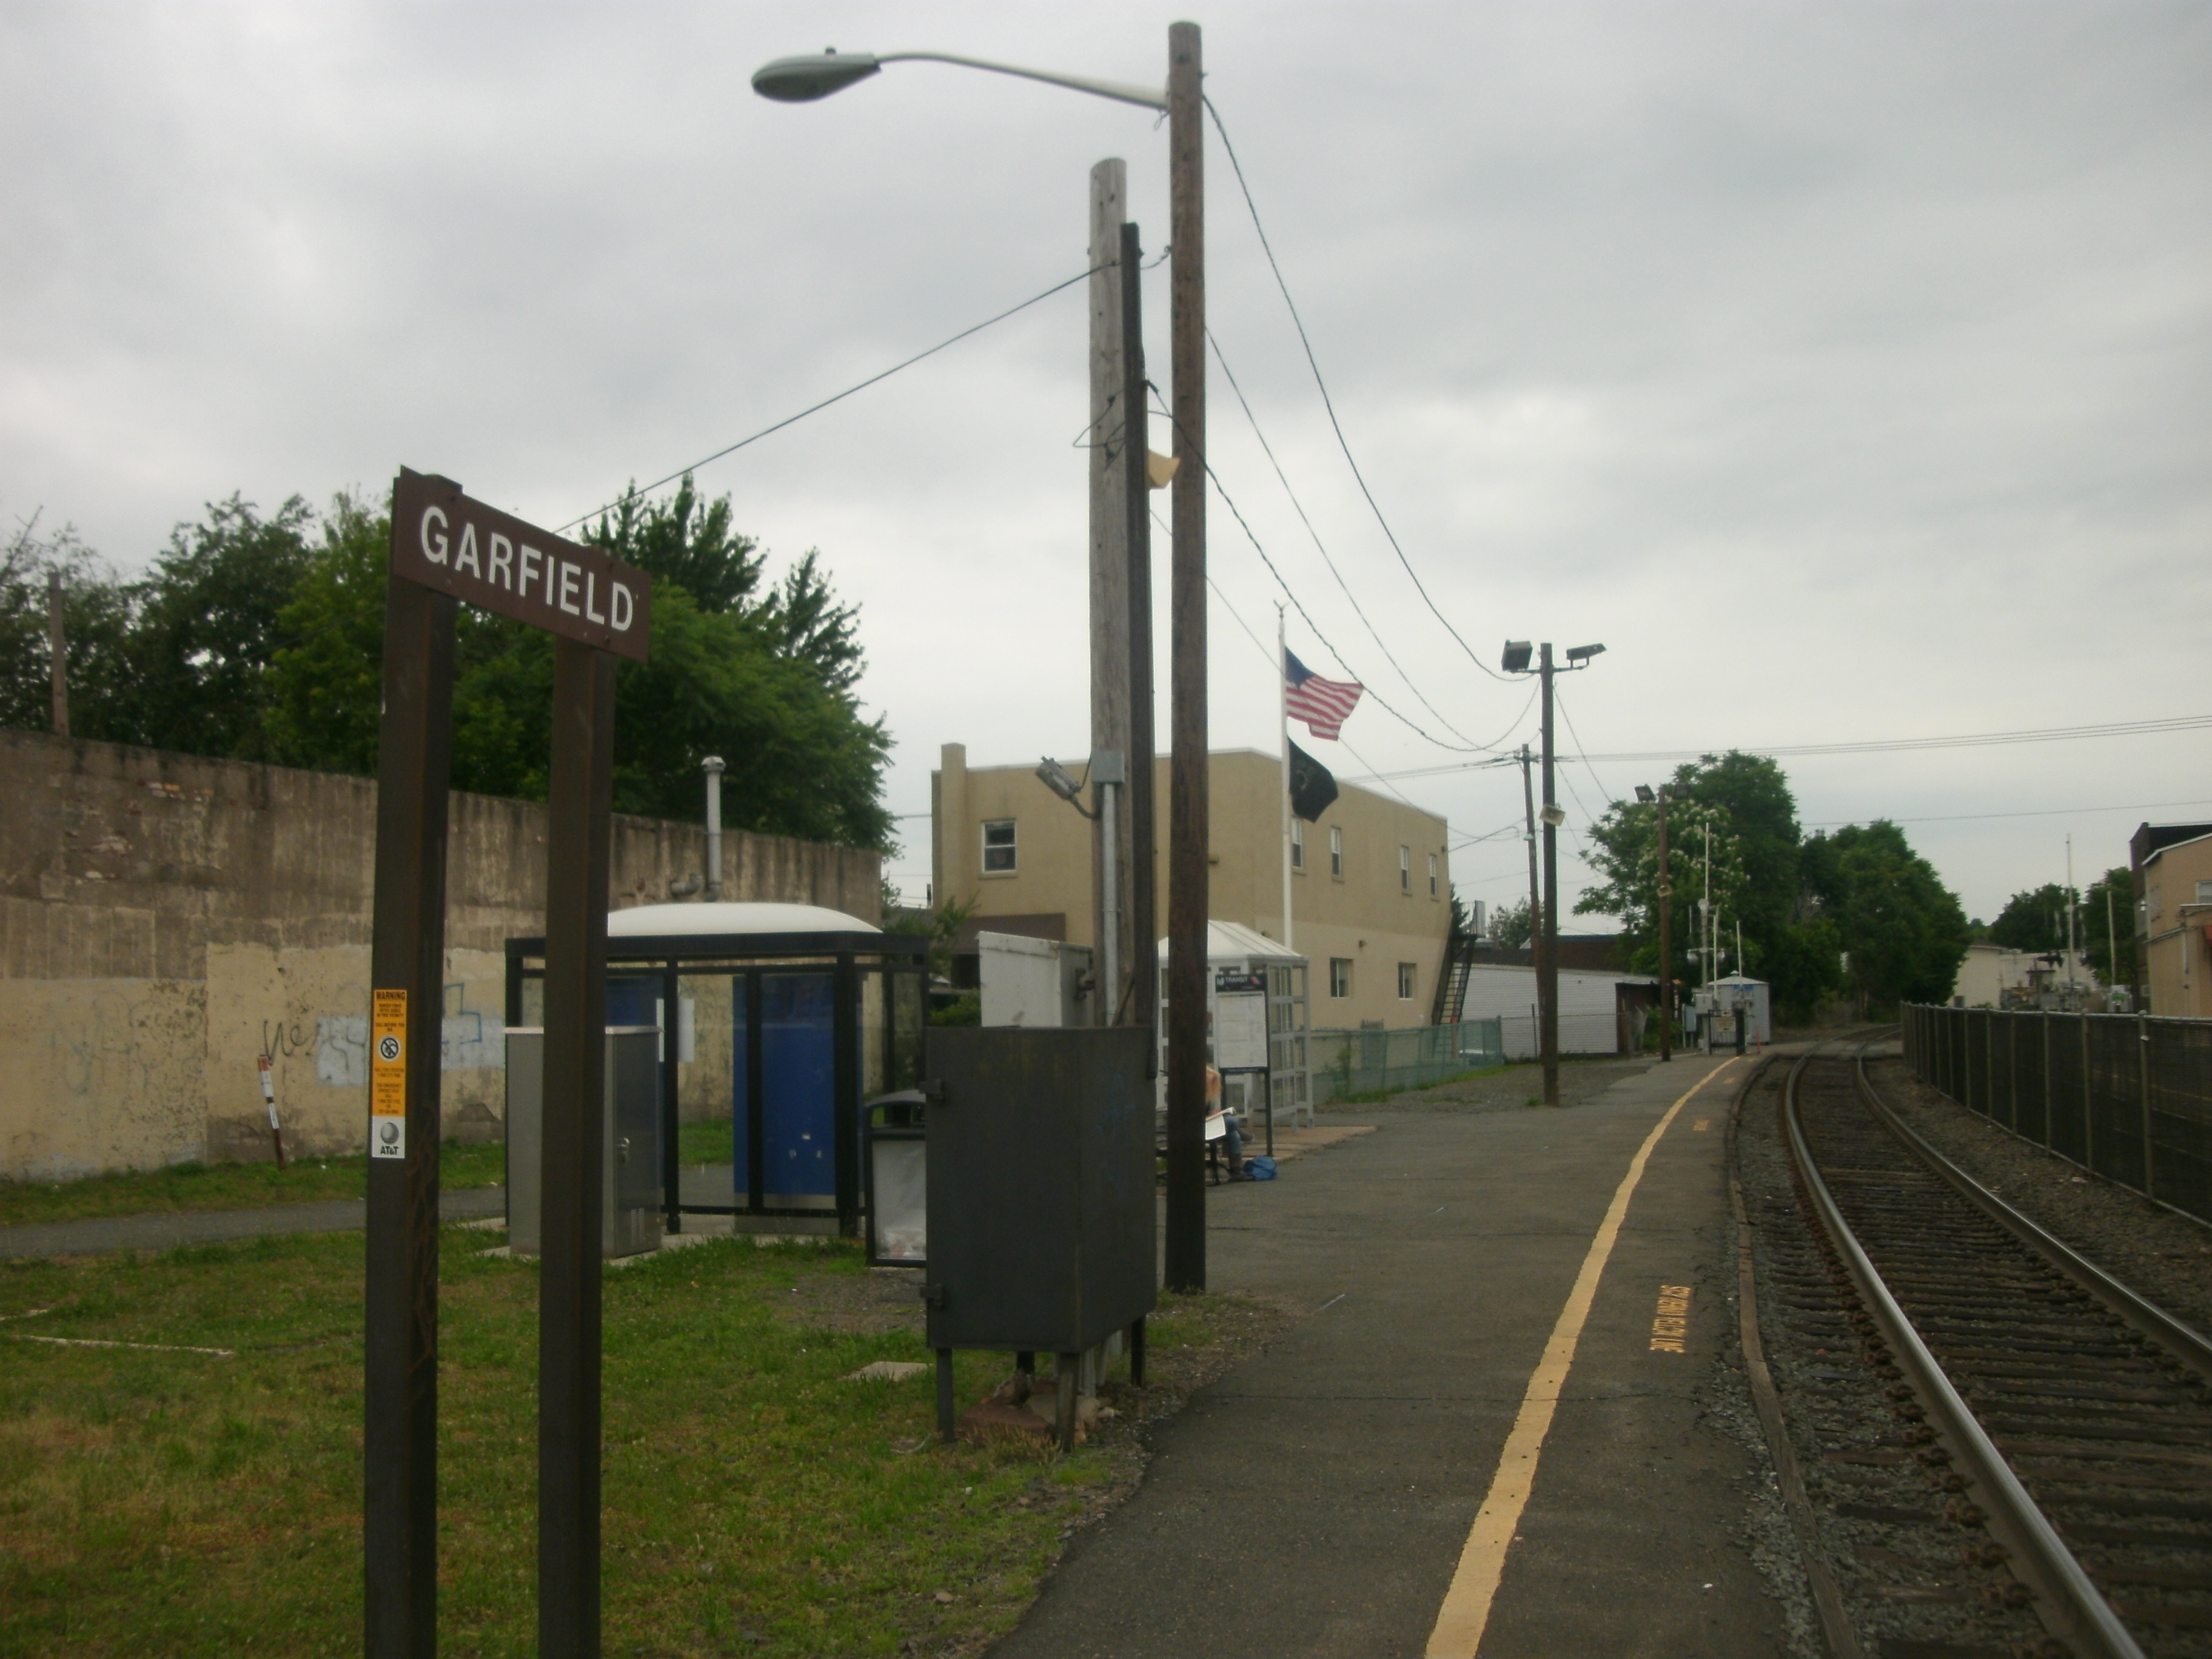 Garfield Station Nj Transit Wikipedia